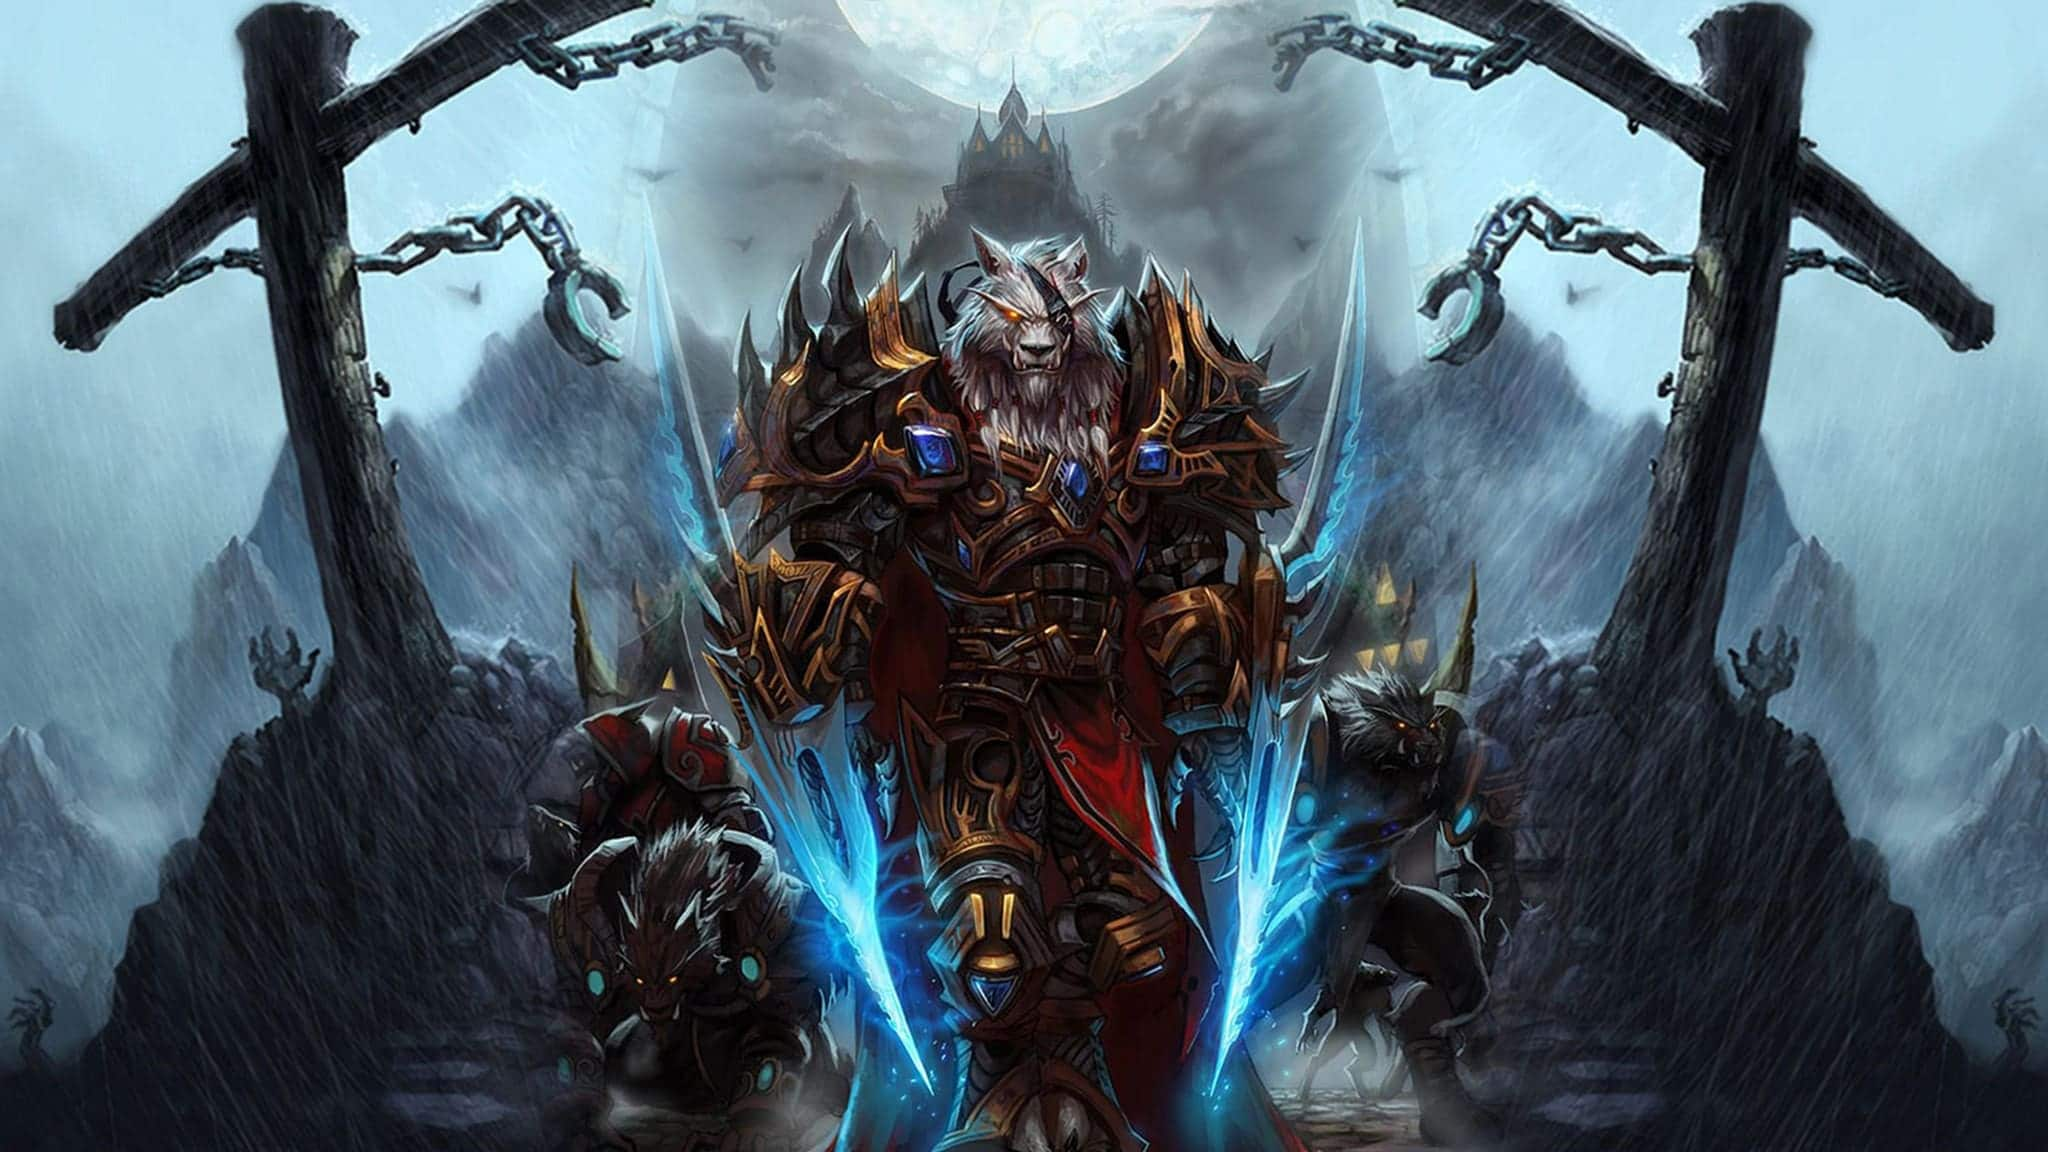 WoW one of the best mmorpg games